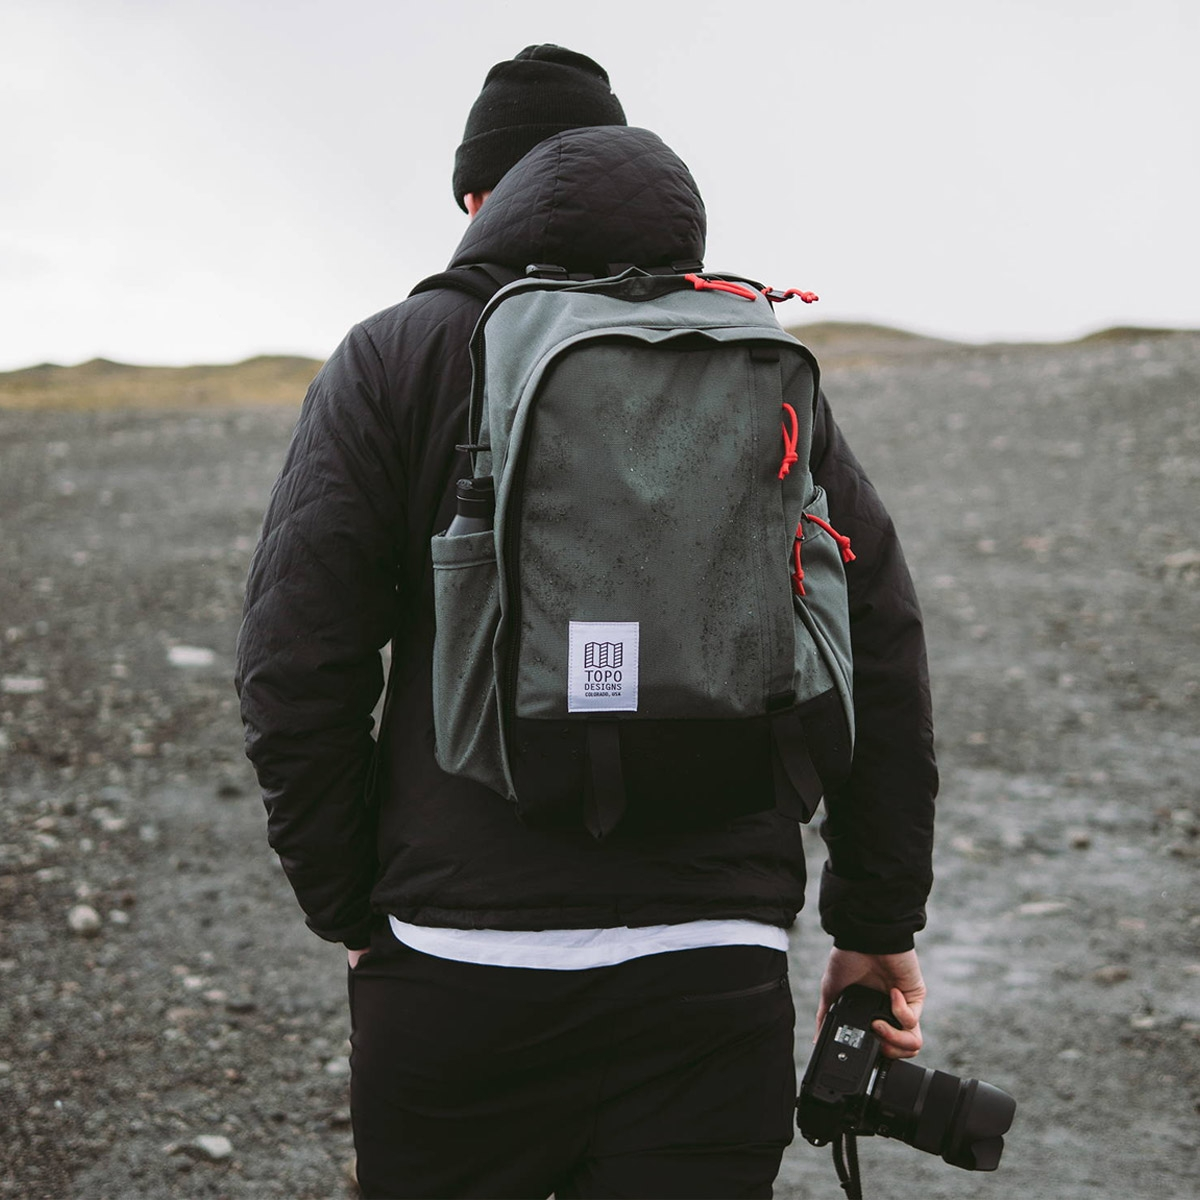 Topo Designs Core Pack, perfect backpack for business travel or school commute